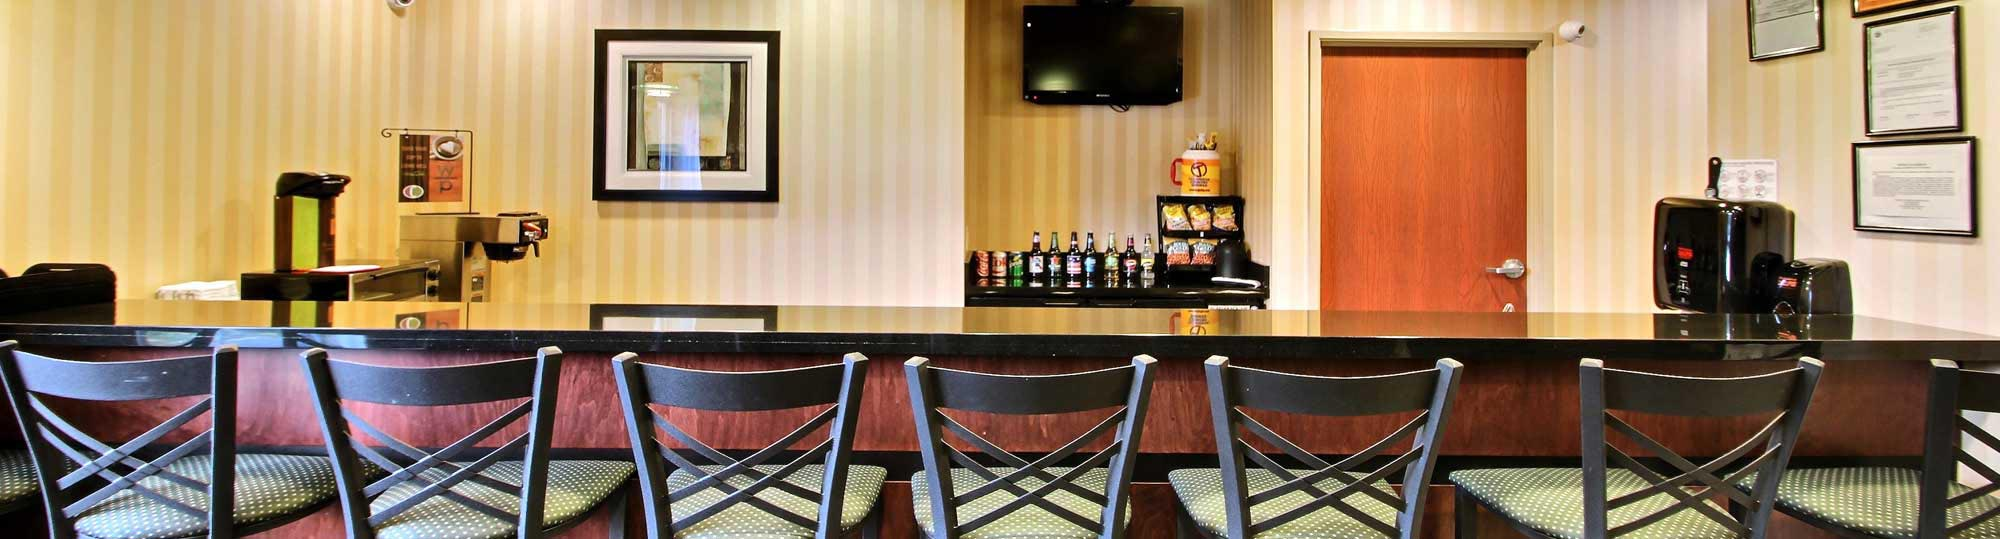 Boarders Inn and Suites Oshkosh